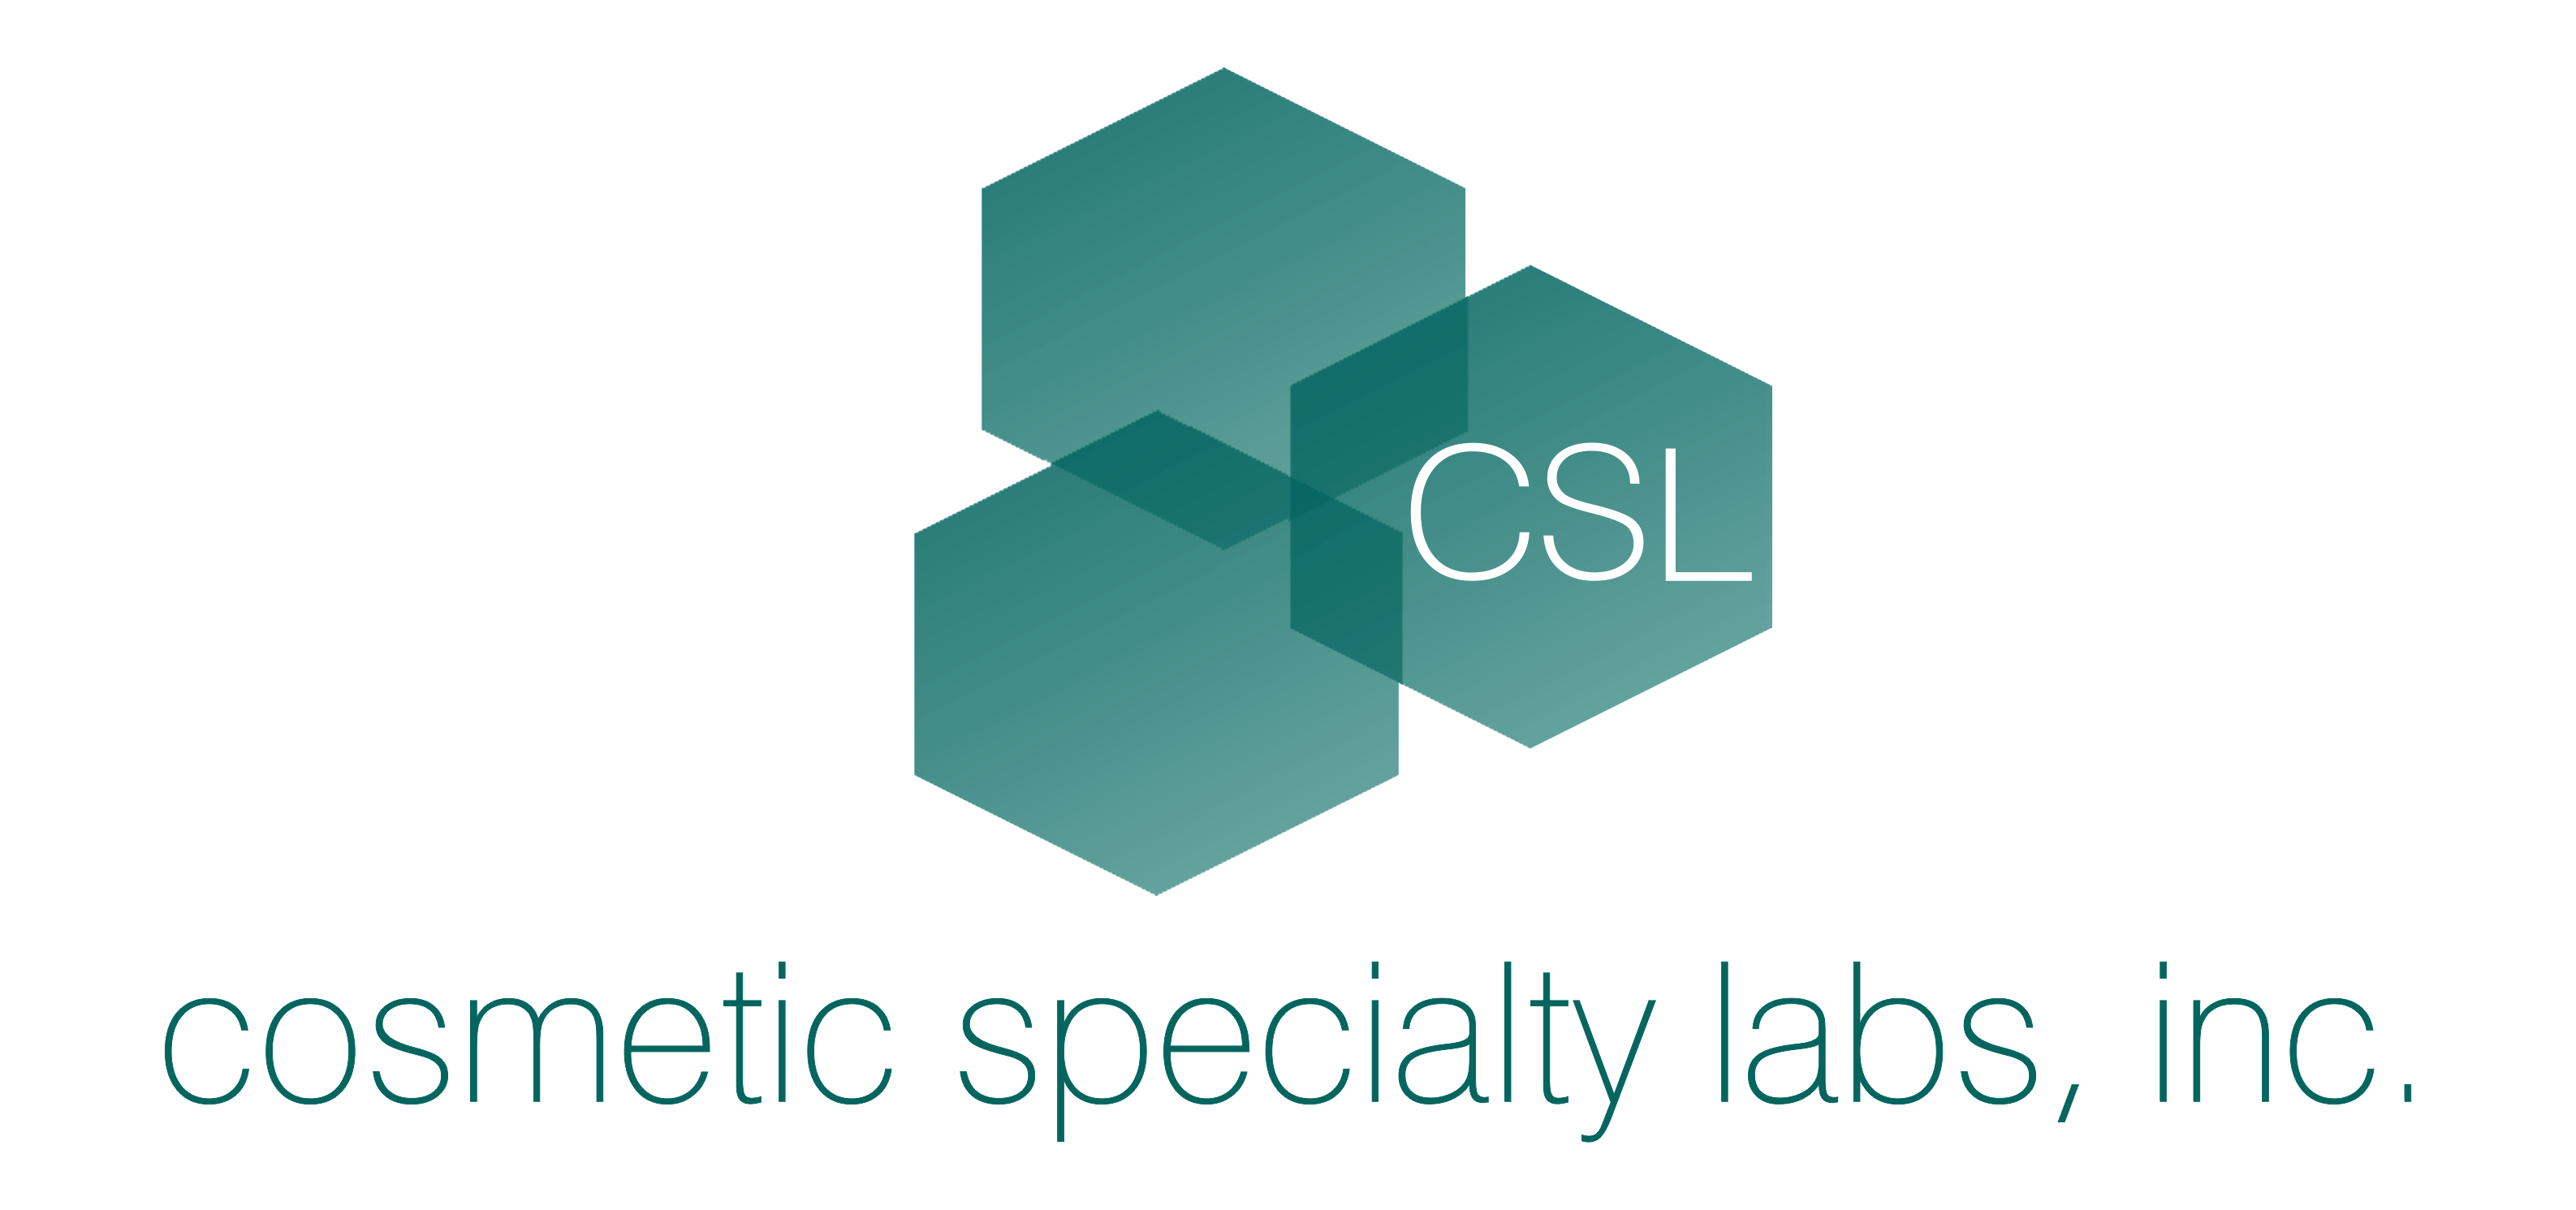 Cosmetic Specialty Labs, Inc